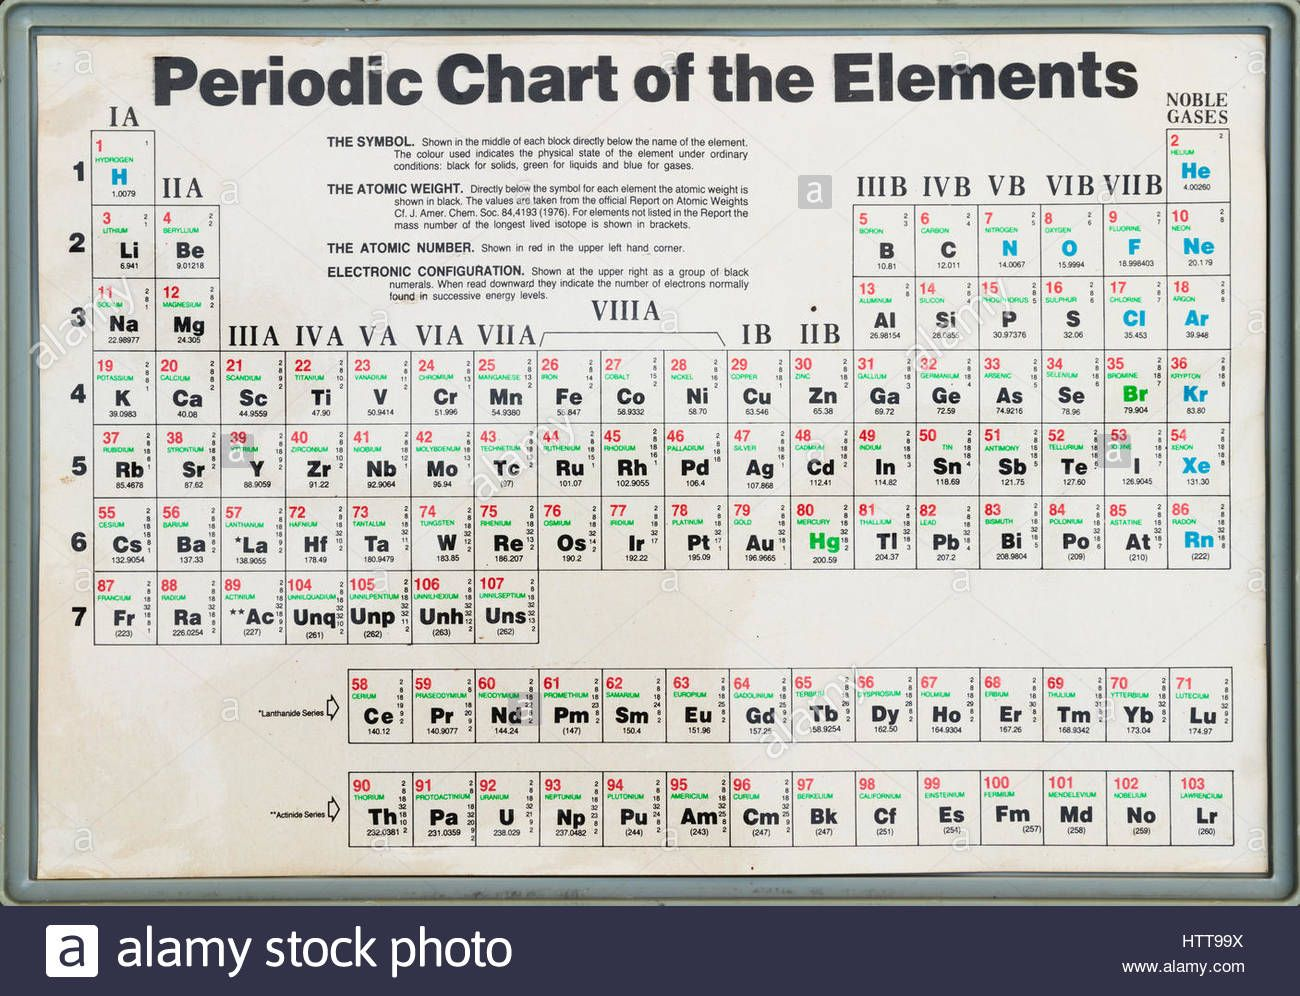 Download This Stock Image Old Periodic Table Of Elements Showing The Symbol Atomic Weight Atomic Mass Electron Configuration Periodic Table Periodic Chart [ 996 x 1300 Pixel ]